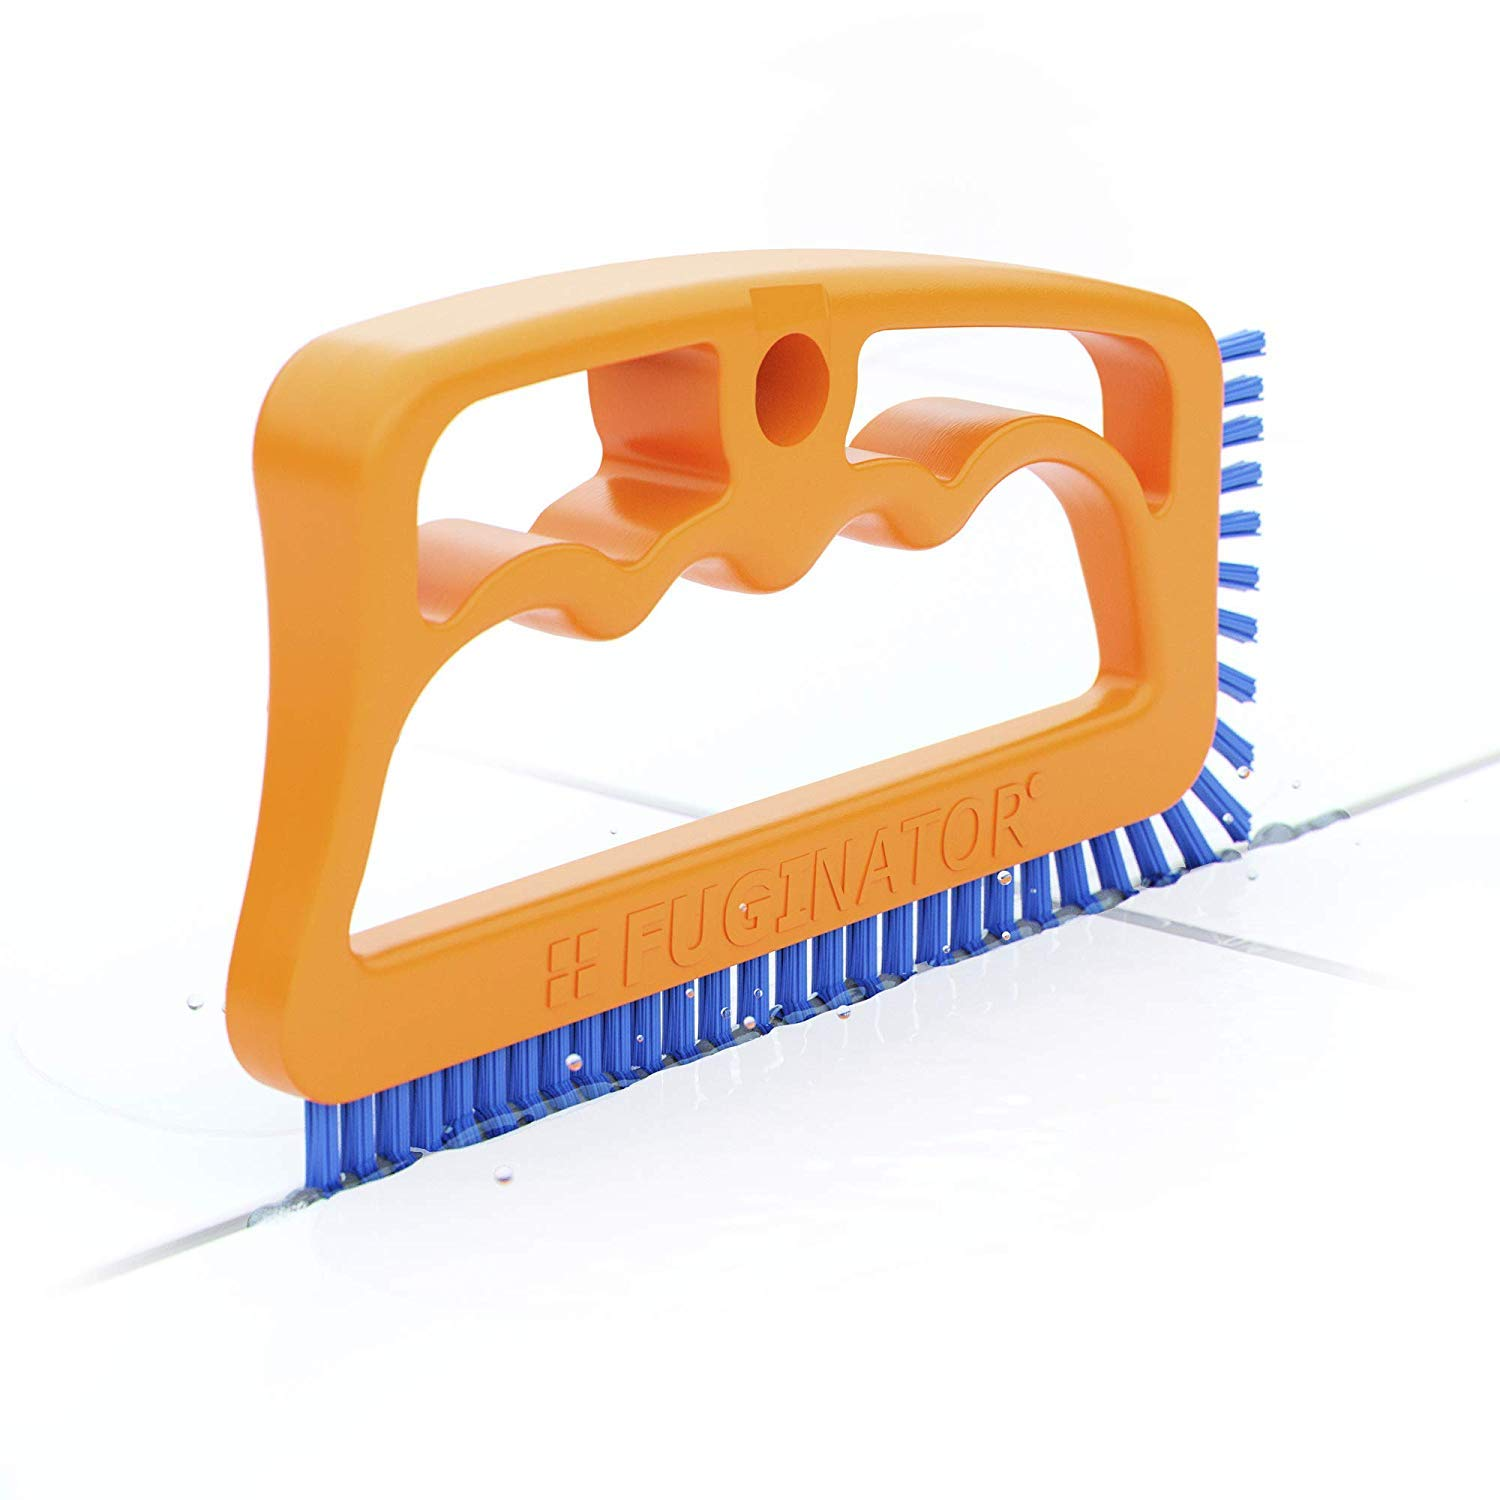 Fugenial 'Fuginator Tile Joint Cleaning Brush for Use in The Bathroom, Kitchen and The Rest of The Household - Special Edition